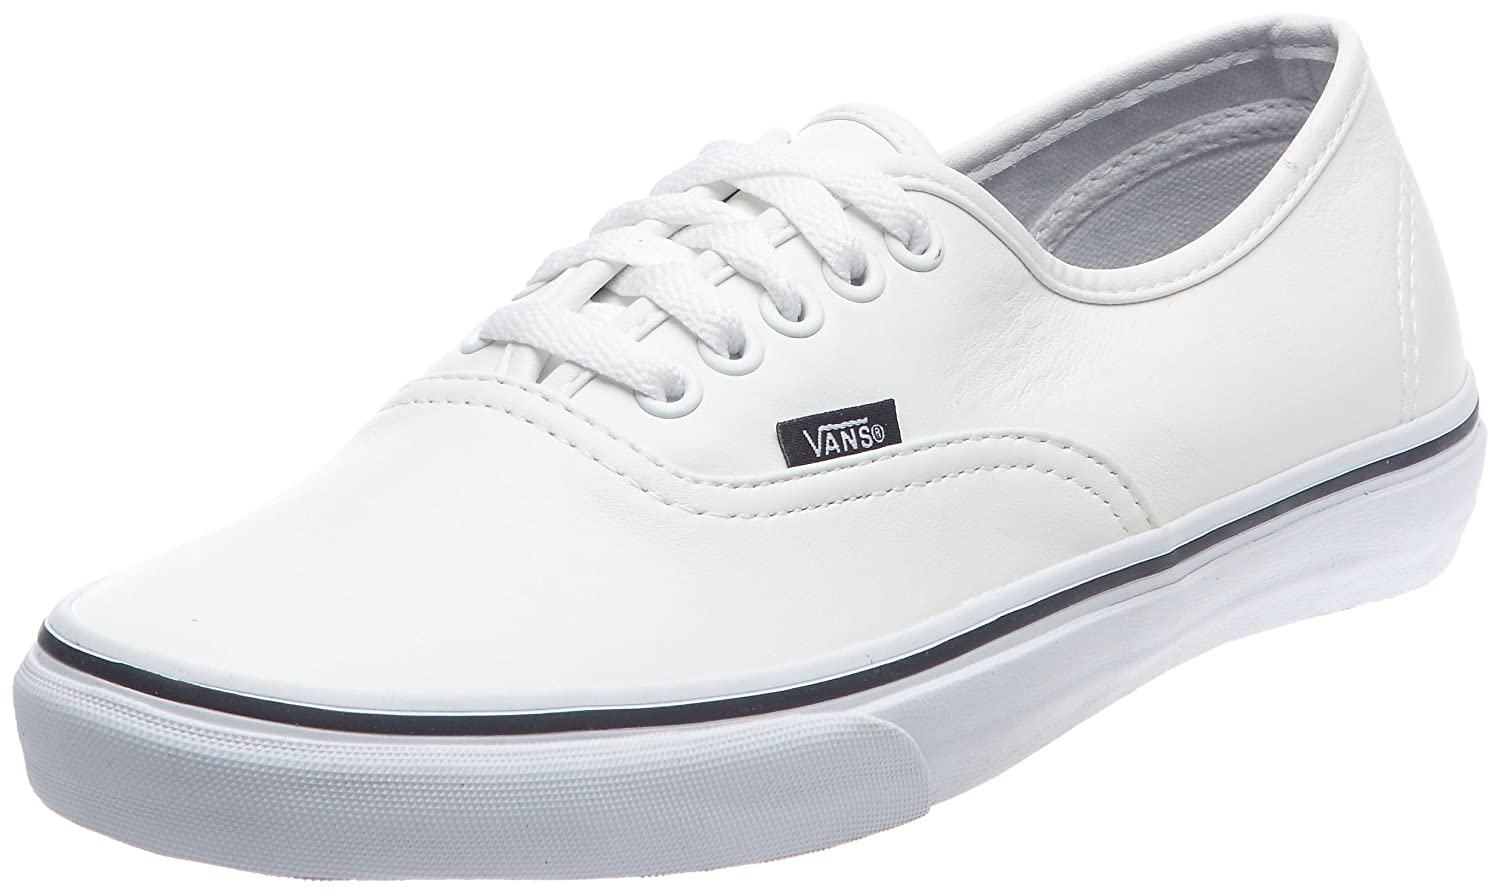 一流の品質 [バンズ] スニーカー Women's AUTHENTIC (Pig Women Suede) 7 VN0A38EMU5O レディース US B0059BSYOE 7 M US Women/ 5.5 M US Men|Italian Leather True White Italian Leather True White 7 M US Women/ 5.5 M US Men, FASHIONMARKET:d8431b42 --- svecha37.ru